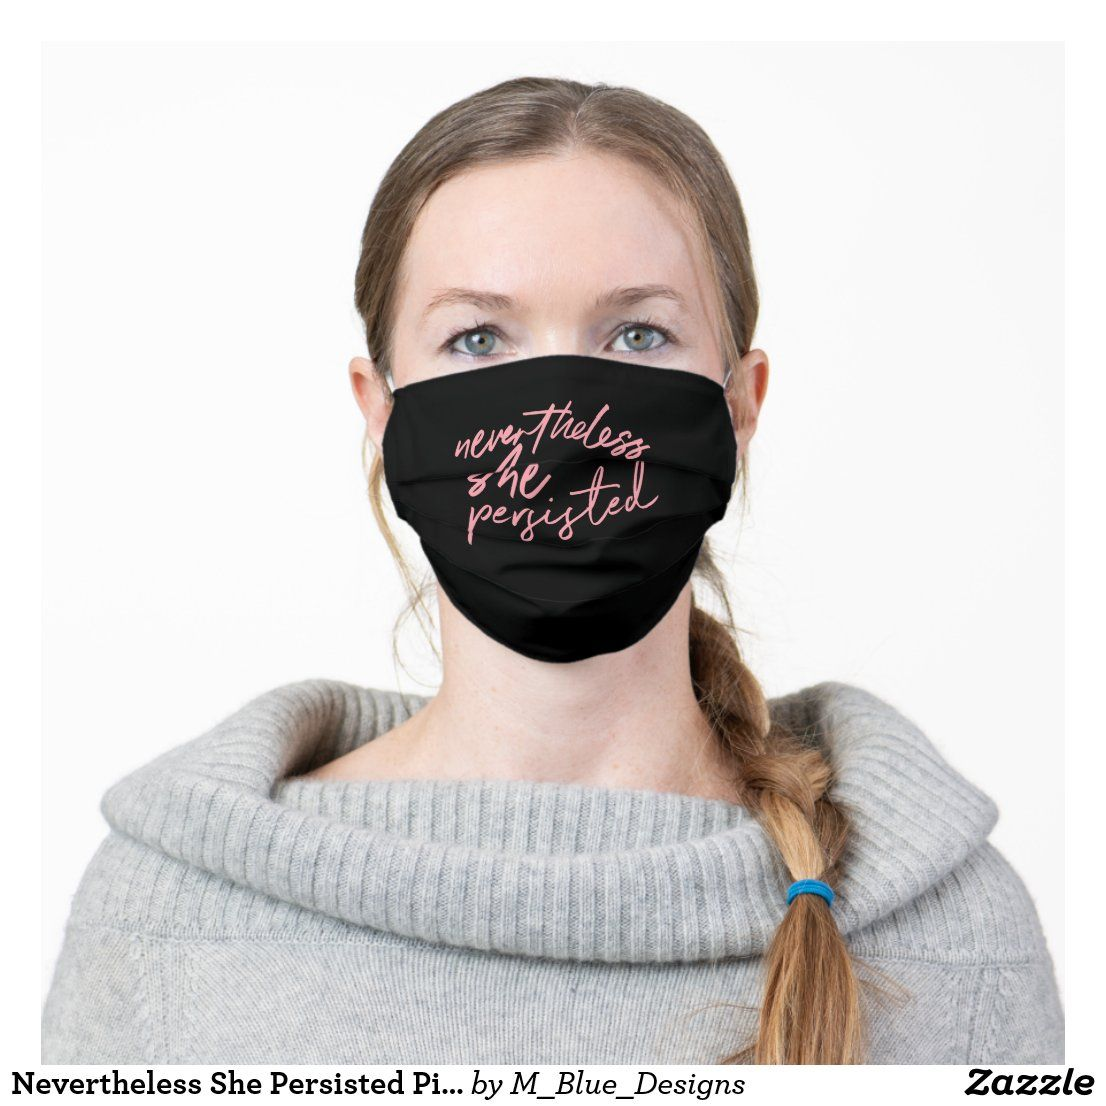 Pin on face mask covid19